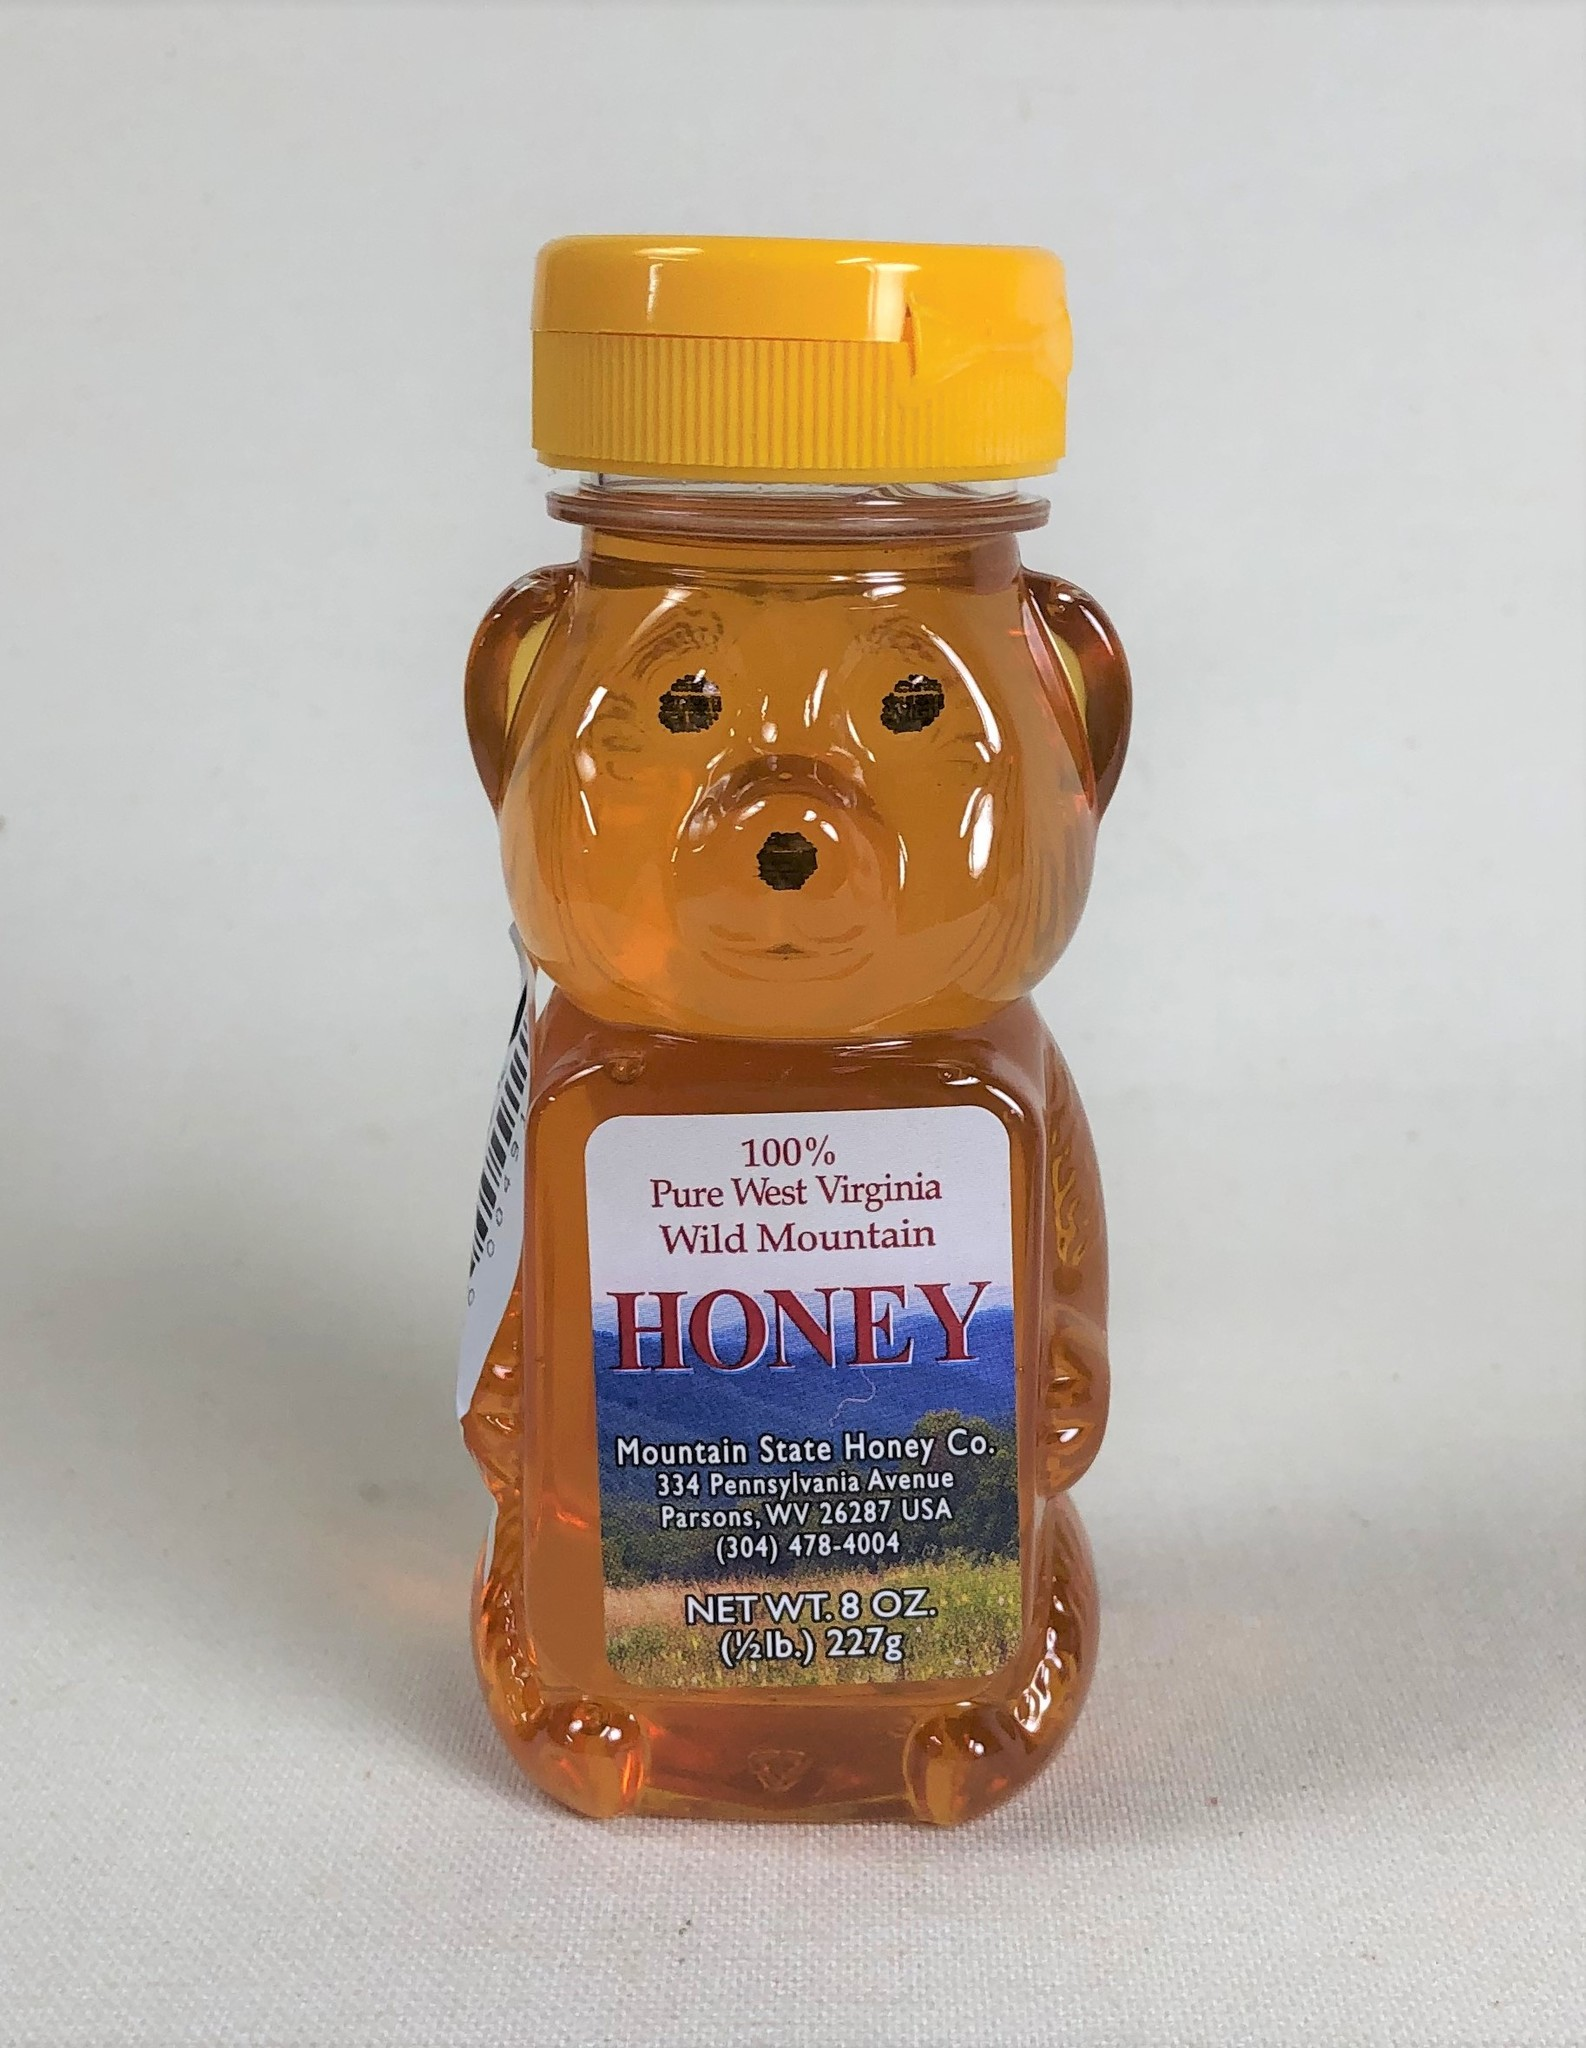 Mountain State Honey Company Mtn State Honey 8 oz. Honeysuckle Bear